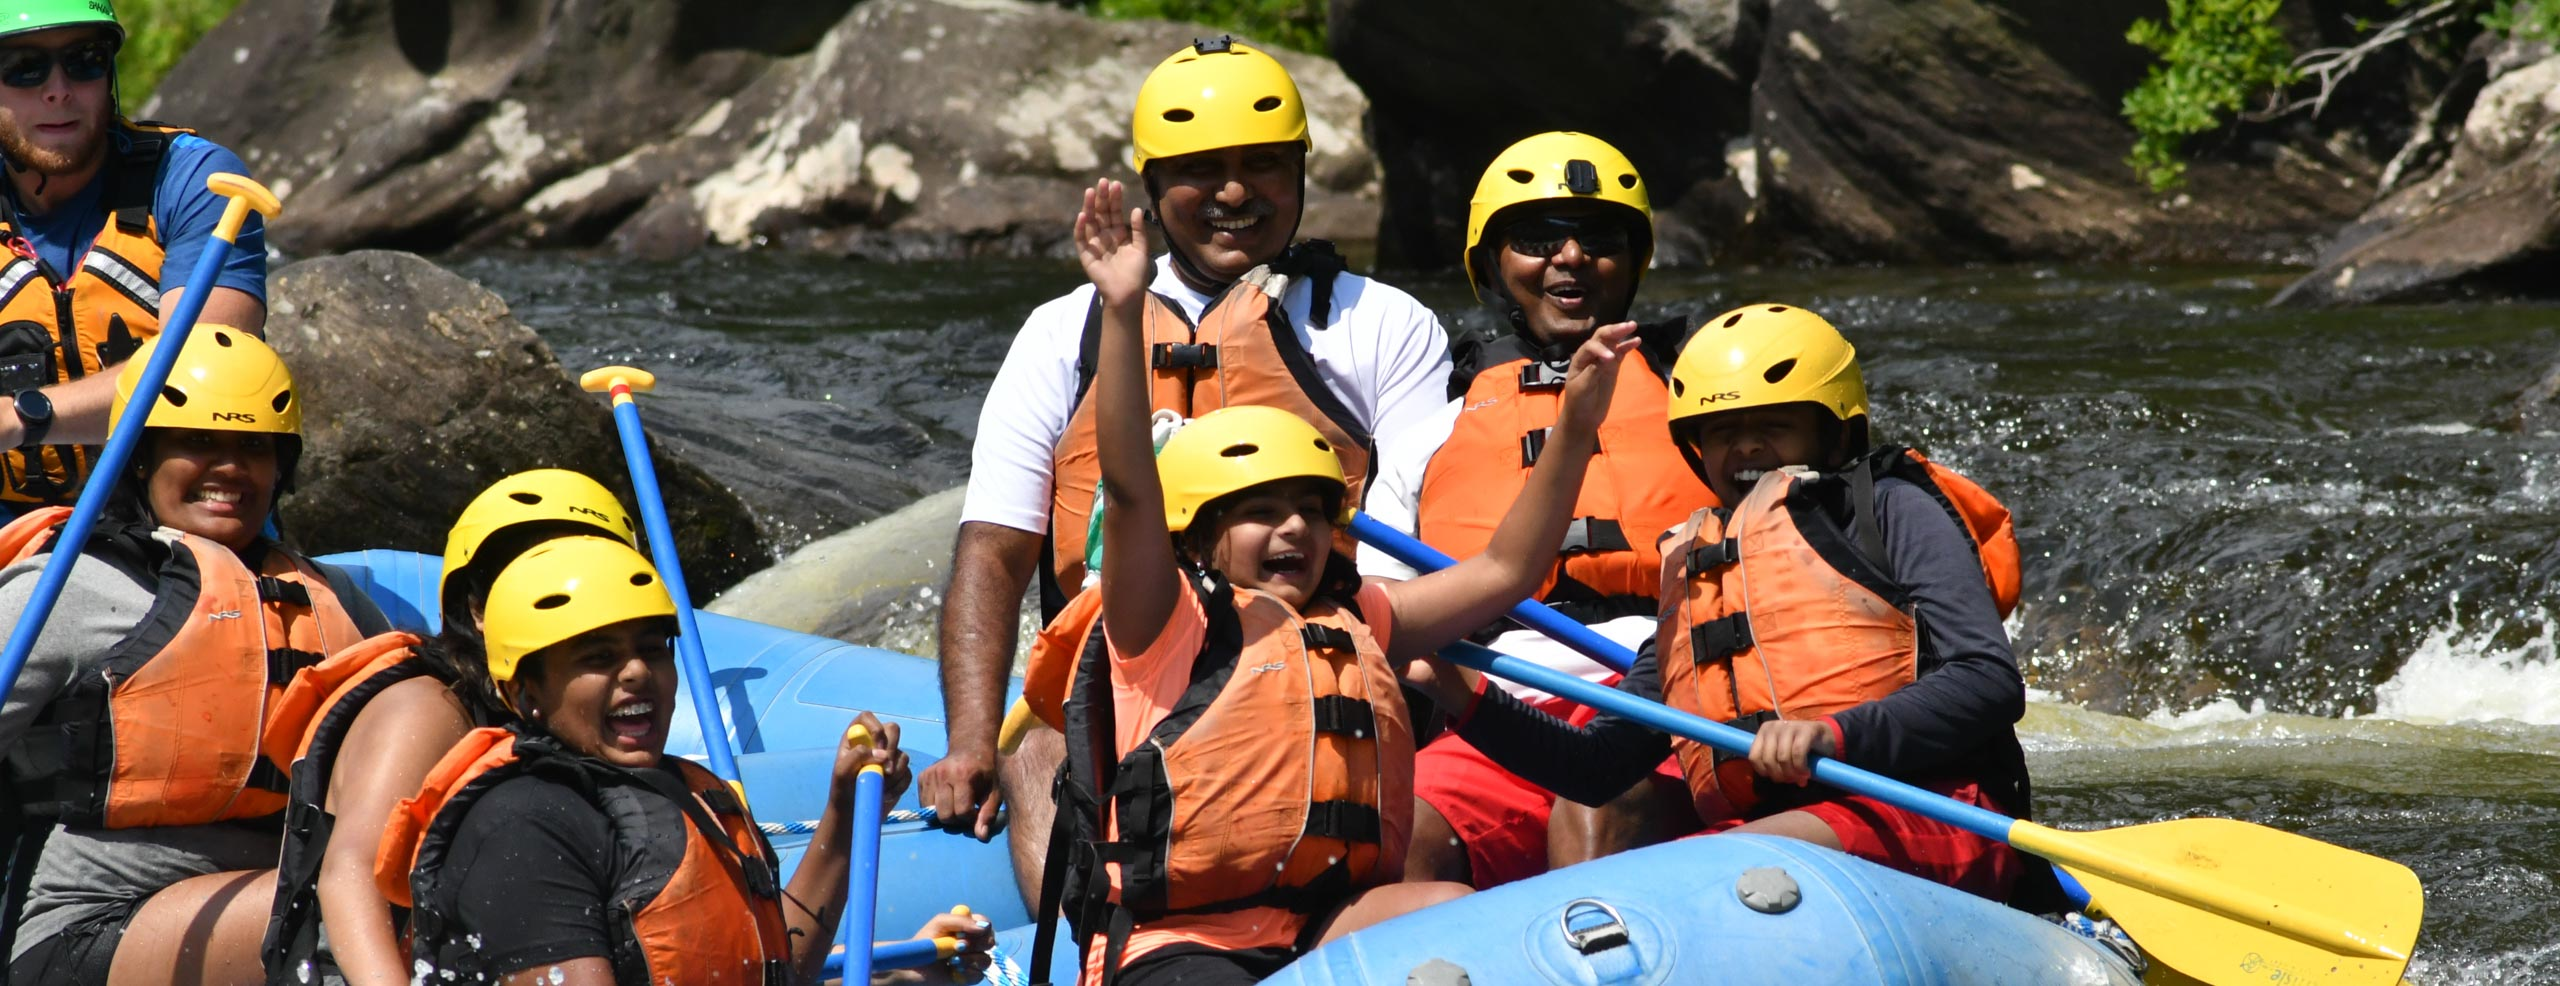 Group of people in a raft having fun and smiling during small rapids